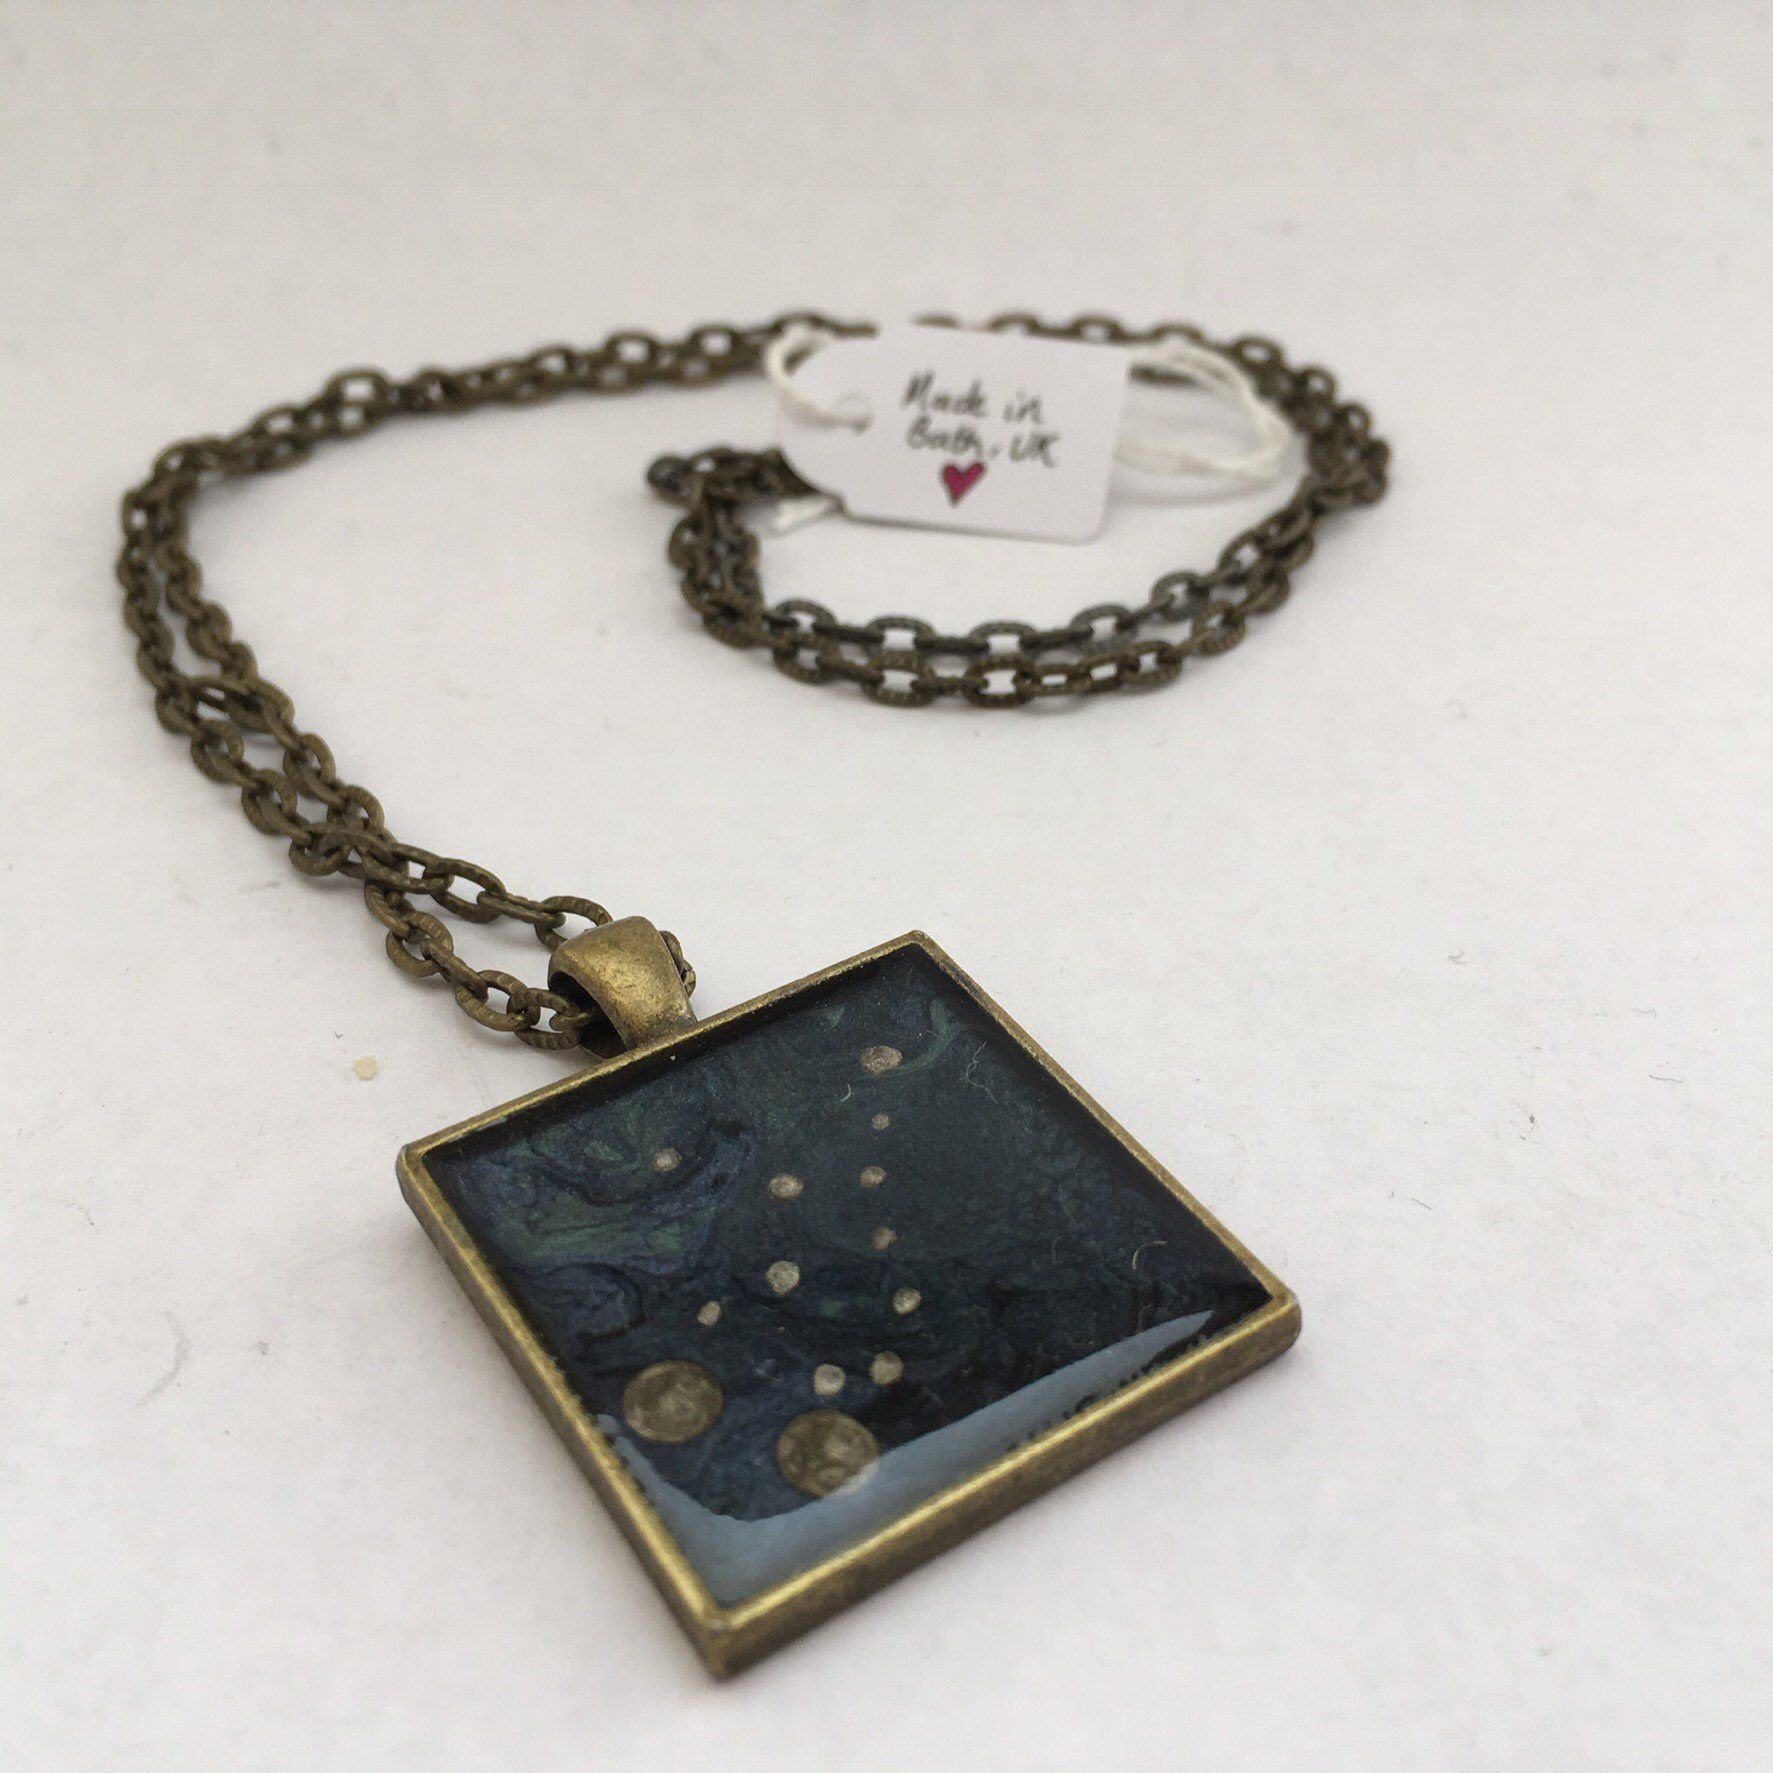 Virgo zodiac constellation jewelry necklace virgo star sign pendant